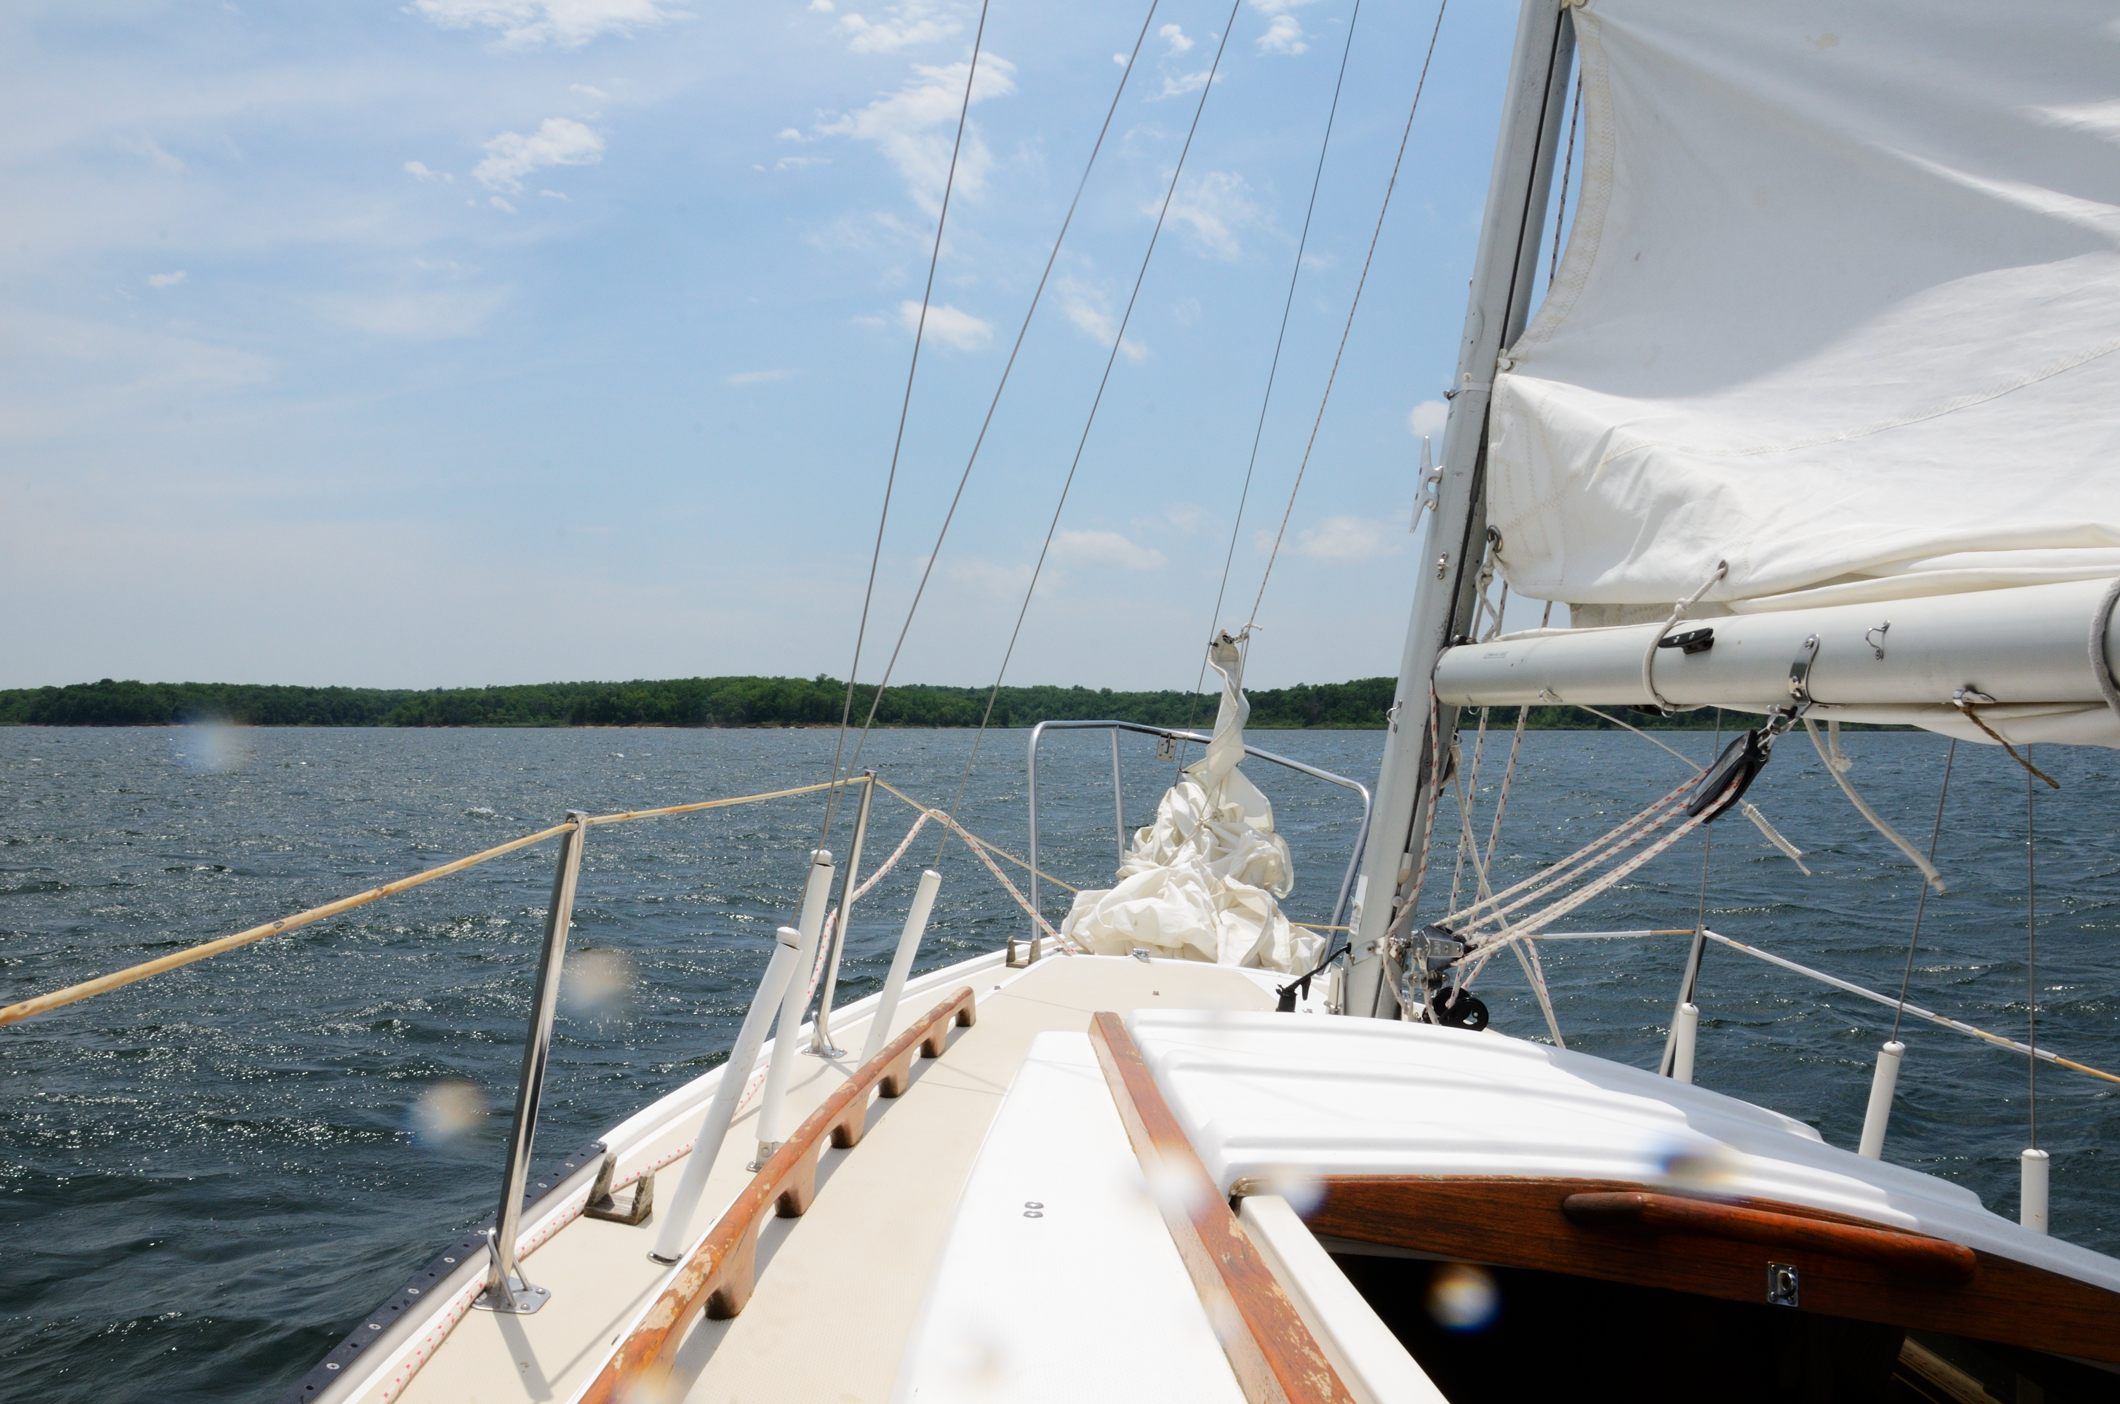 Sailing on Stockton Lake